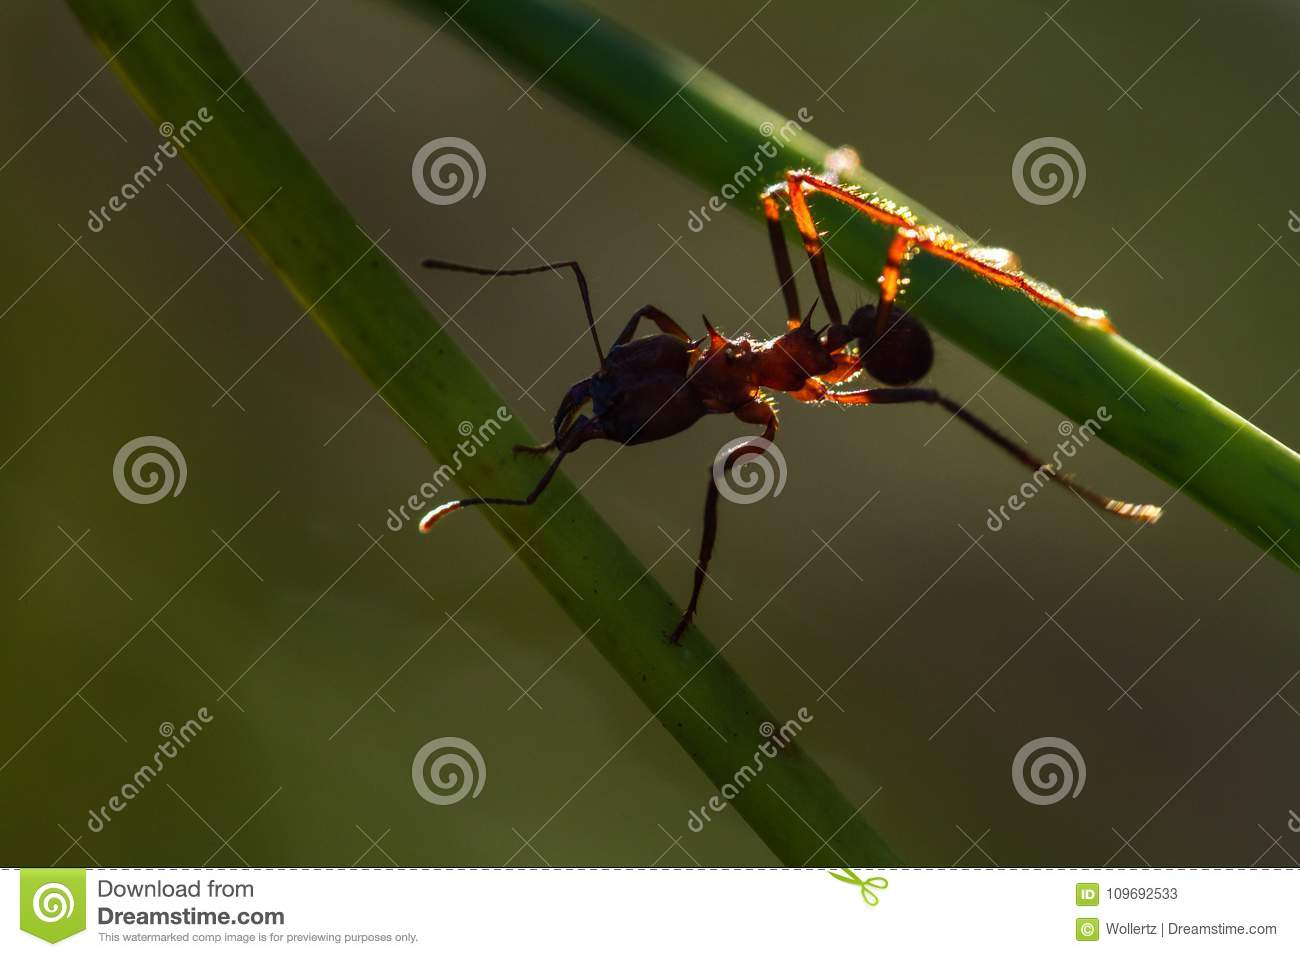 Leaf cutter ant stock image  Image of armor, crops